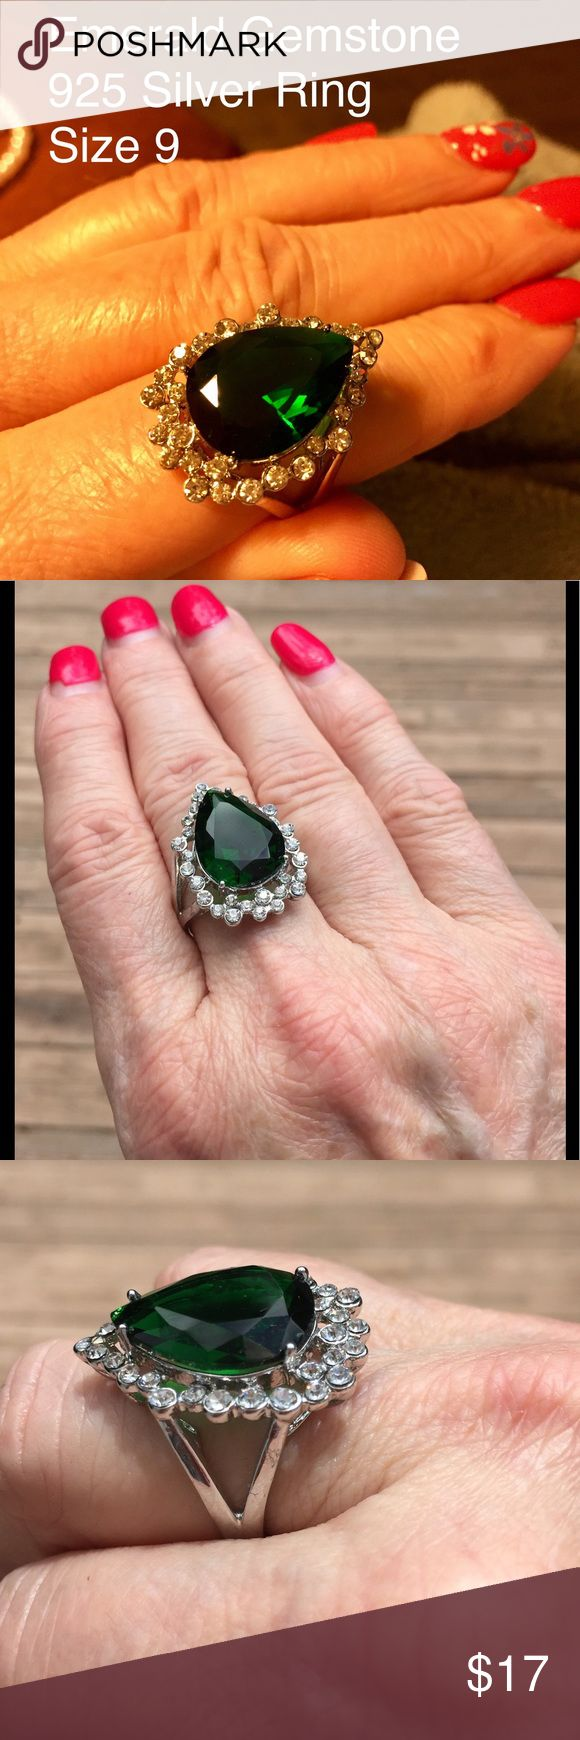 BIG Emerald Green, Pear-Shaped Fashion Ring, 9 This is a truly gorgeous fashion ring in 925 silver.  The emerald gemstone is surrounded by clear stones.  See for yourself with all the pics. It's priced to sell.  Description is as per the purchase documentation. eBay Jewelry Rings